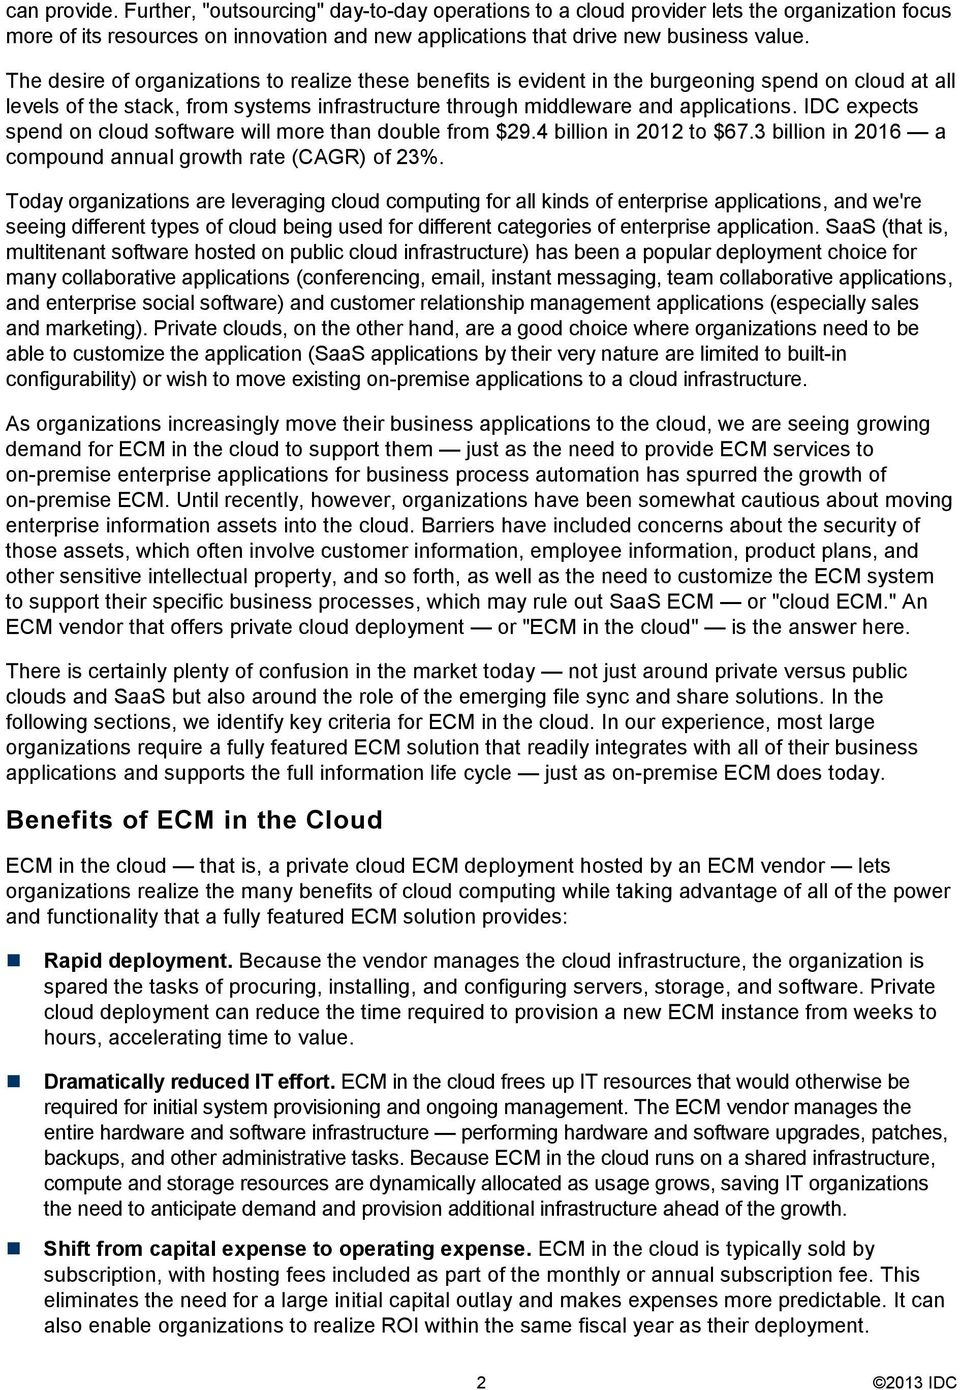 IDC expects spend on cloud software will more than double from $29.4 billion in 2012 to $67.3 billion in 2016 a compound annual growth rate (CAGR) of 23%.